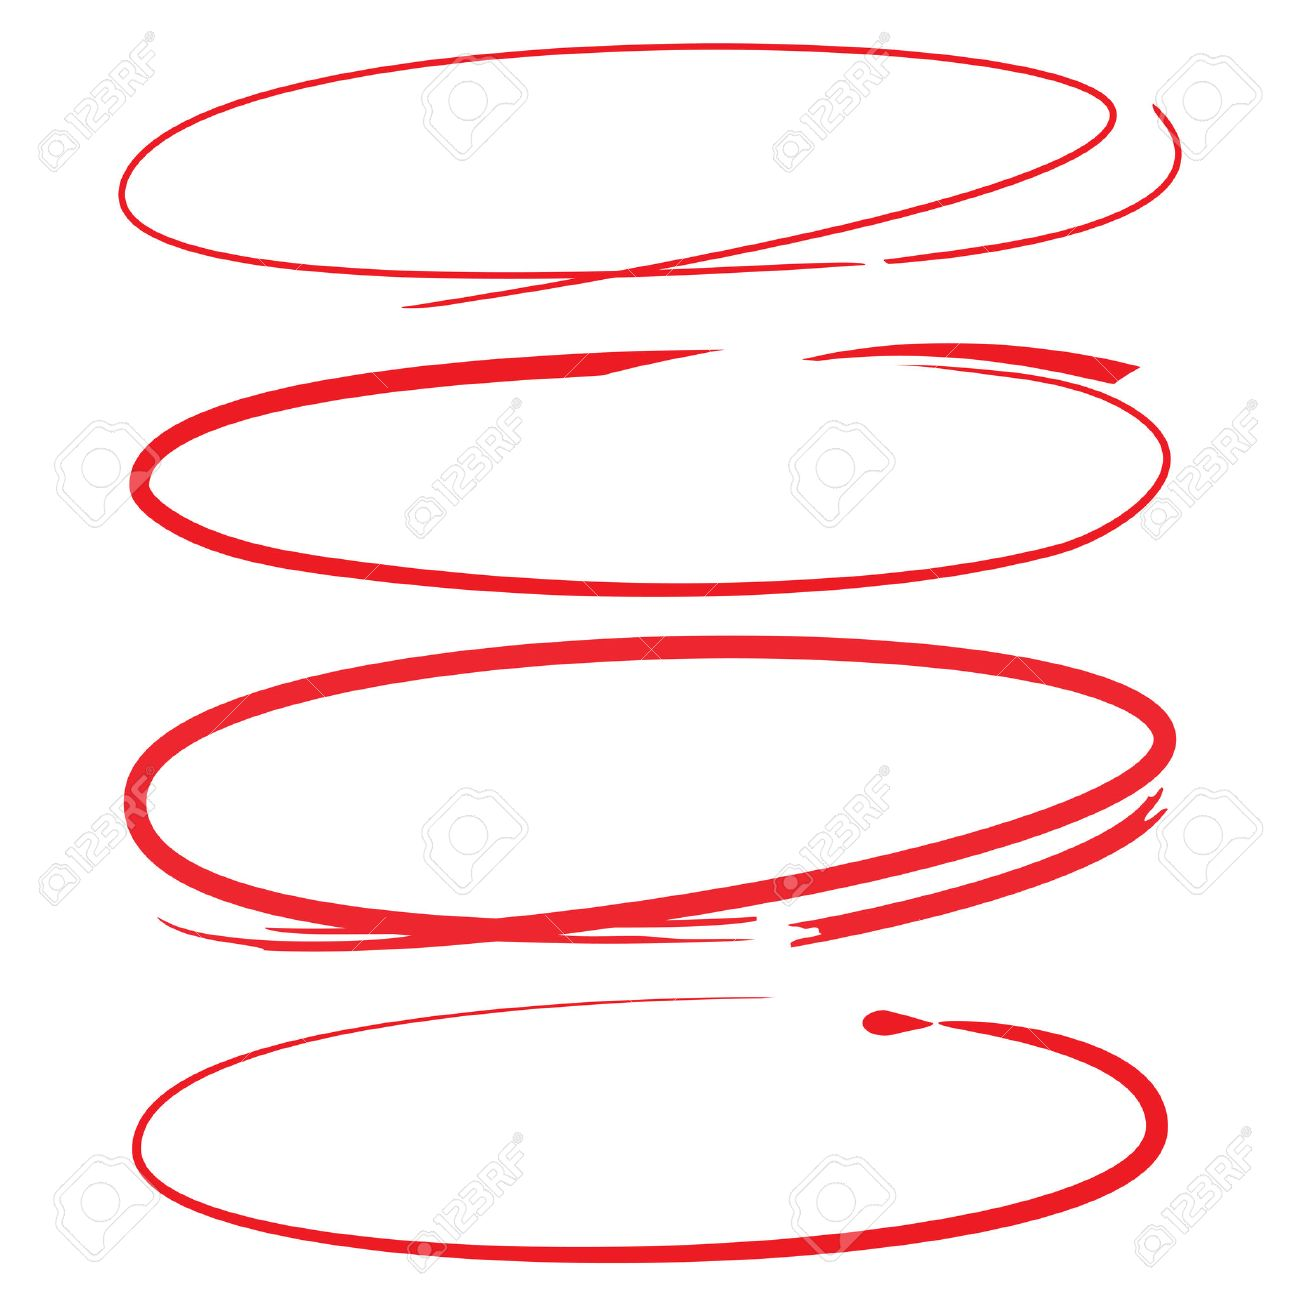 red markers, red circles - 53360717